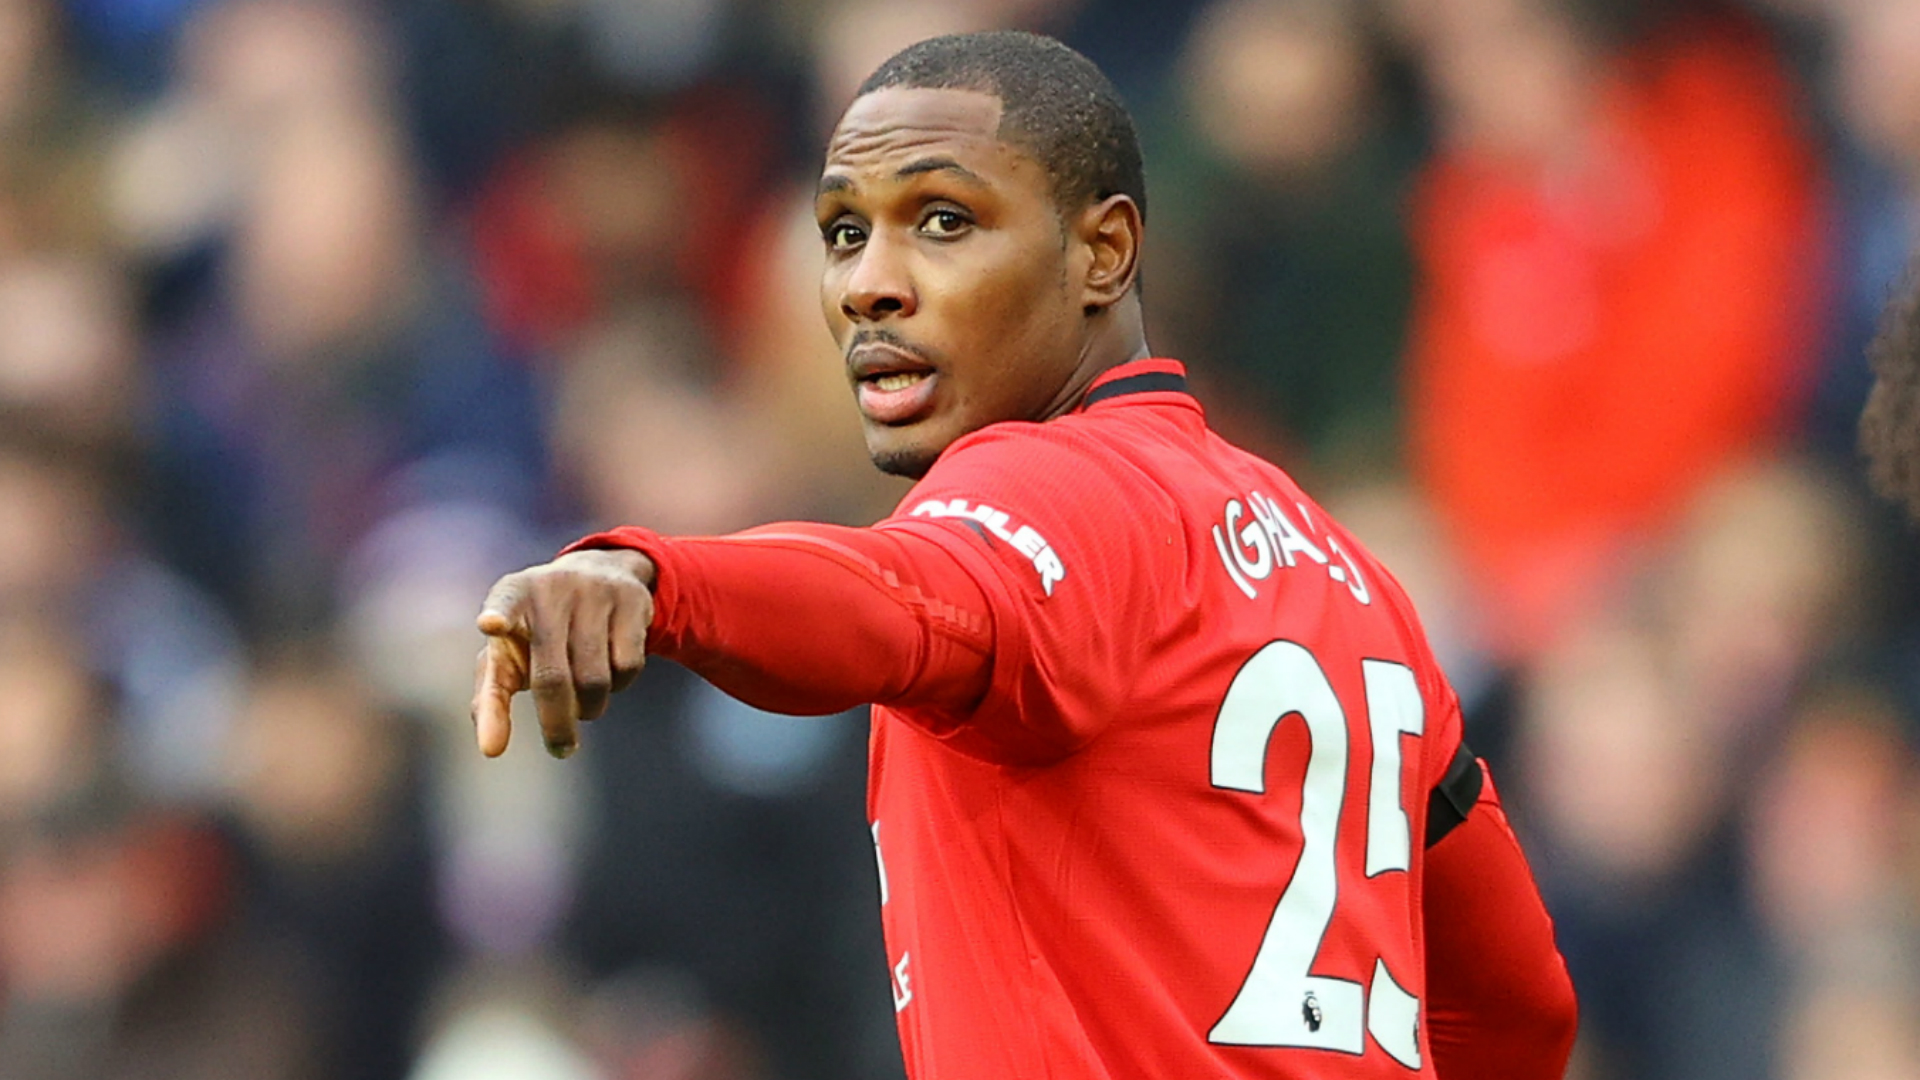 Ighalo urged to shun Shanghai Shenhua's N176m weekly deal for Manchester United